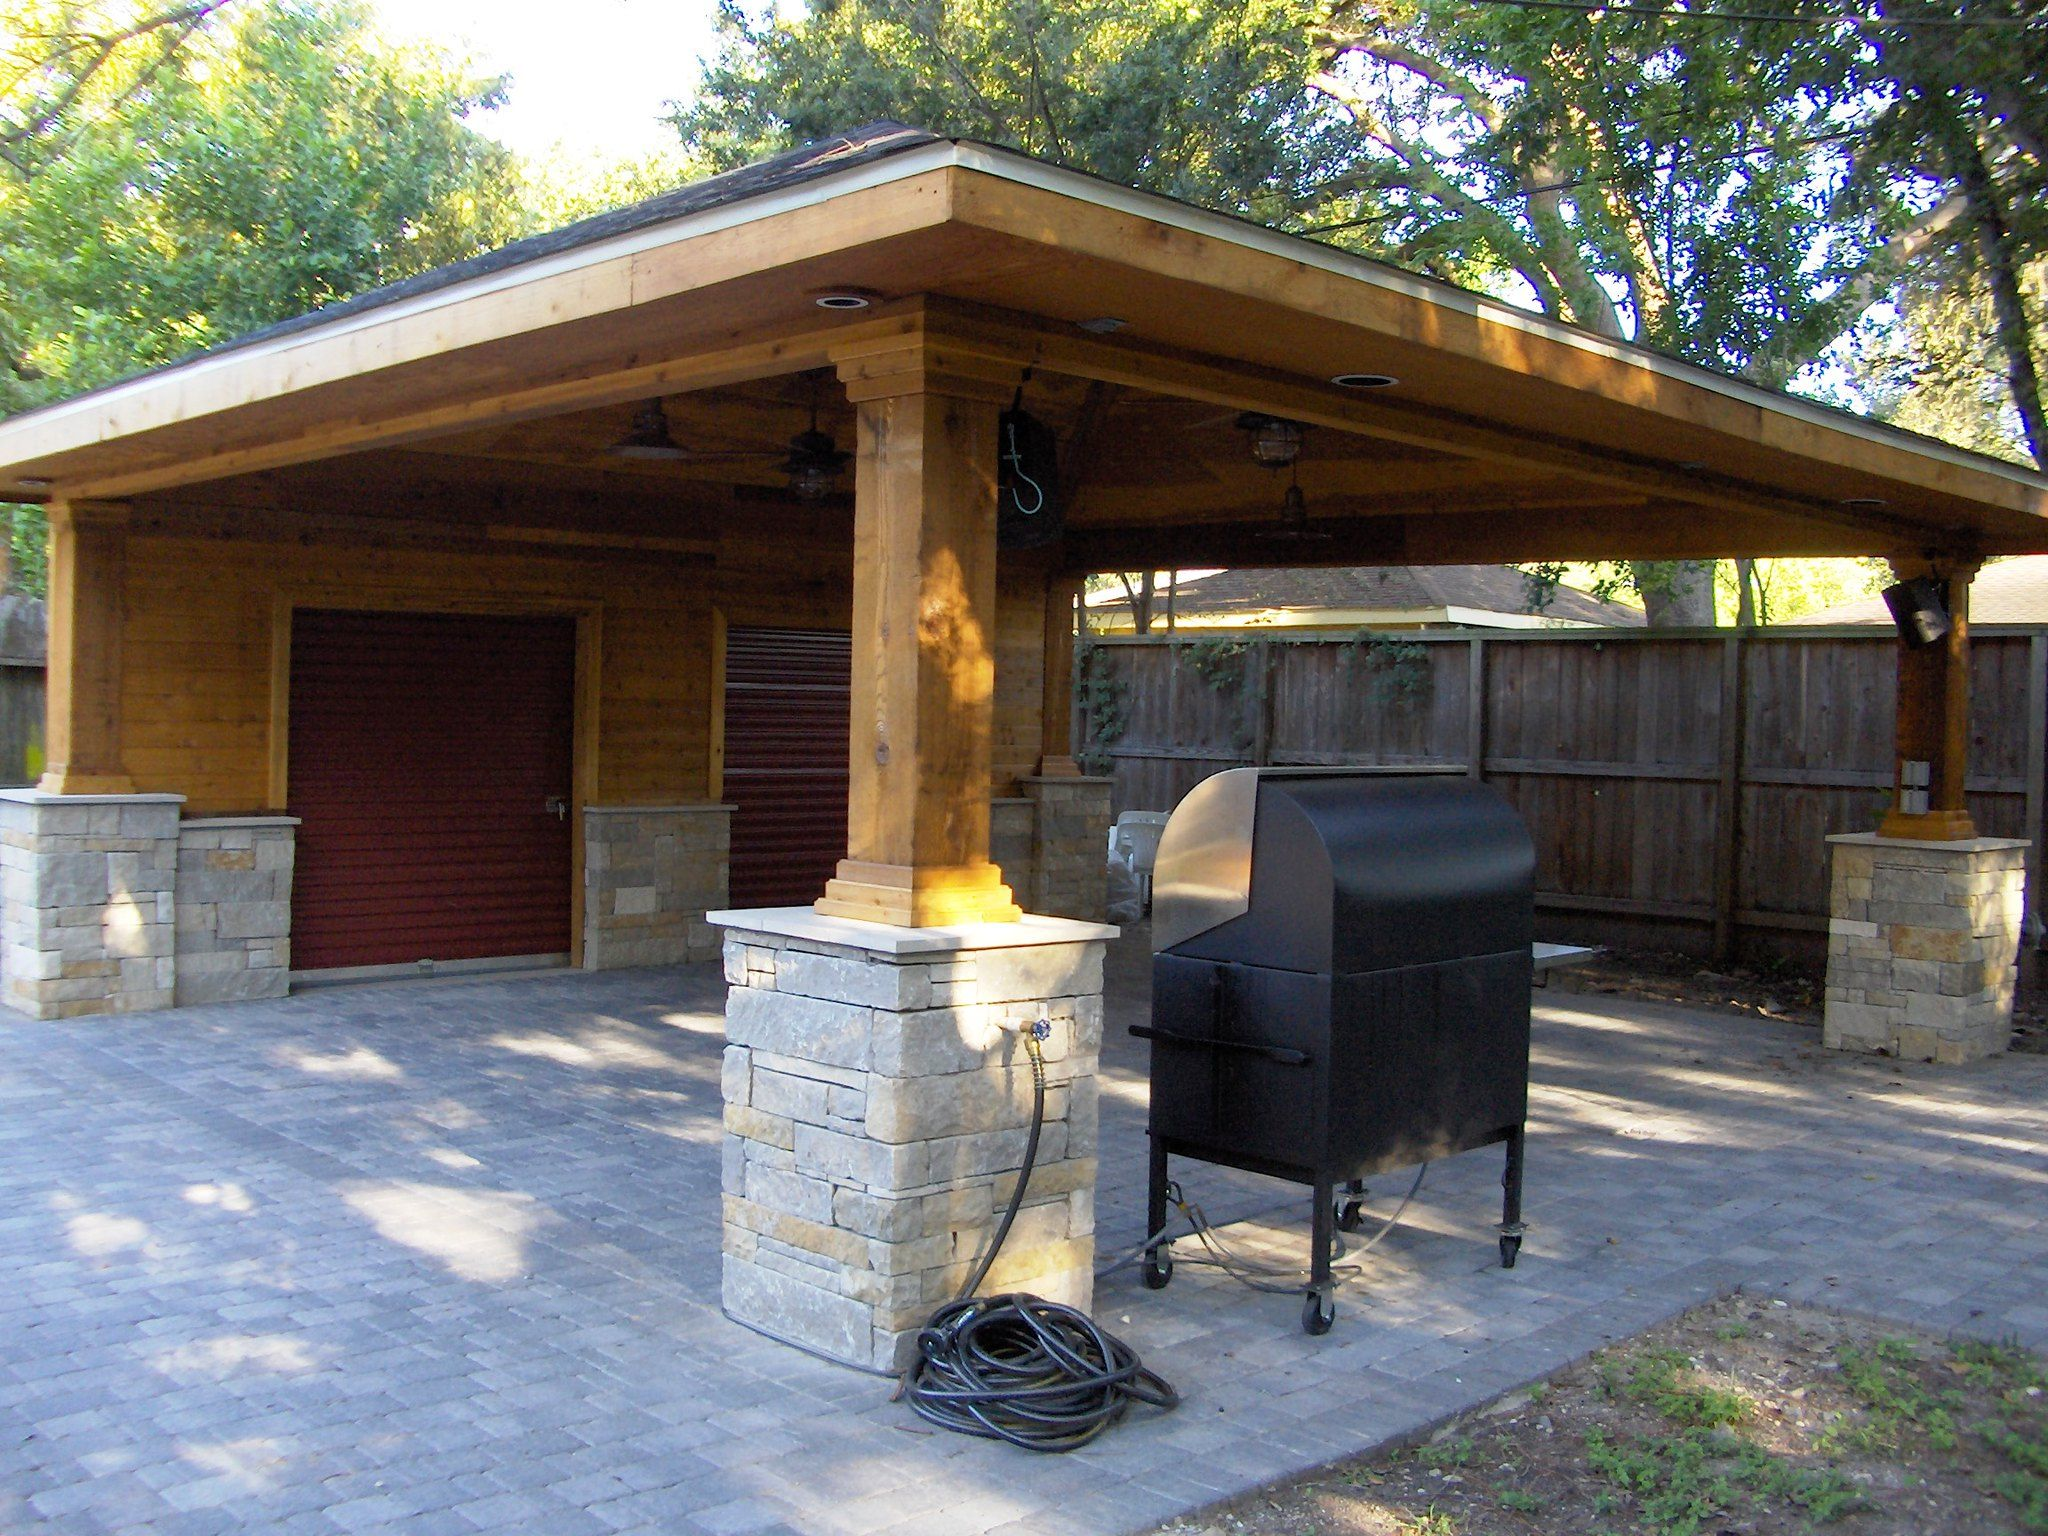 Paver Driveway with Carport and Storage 5 in 2020